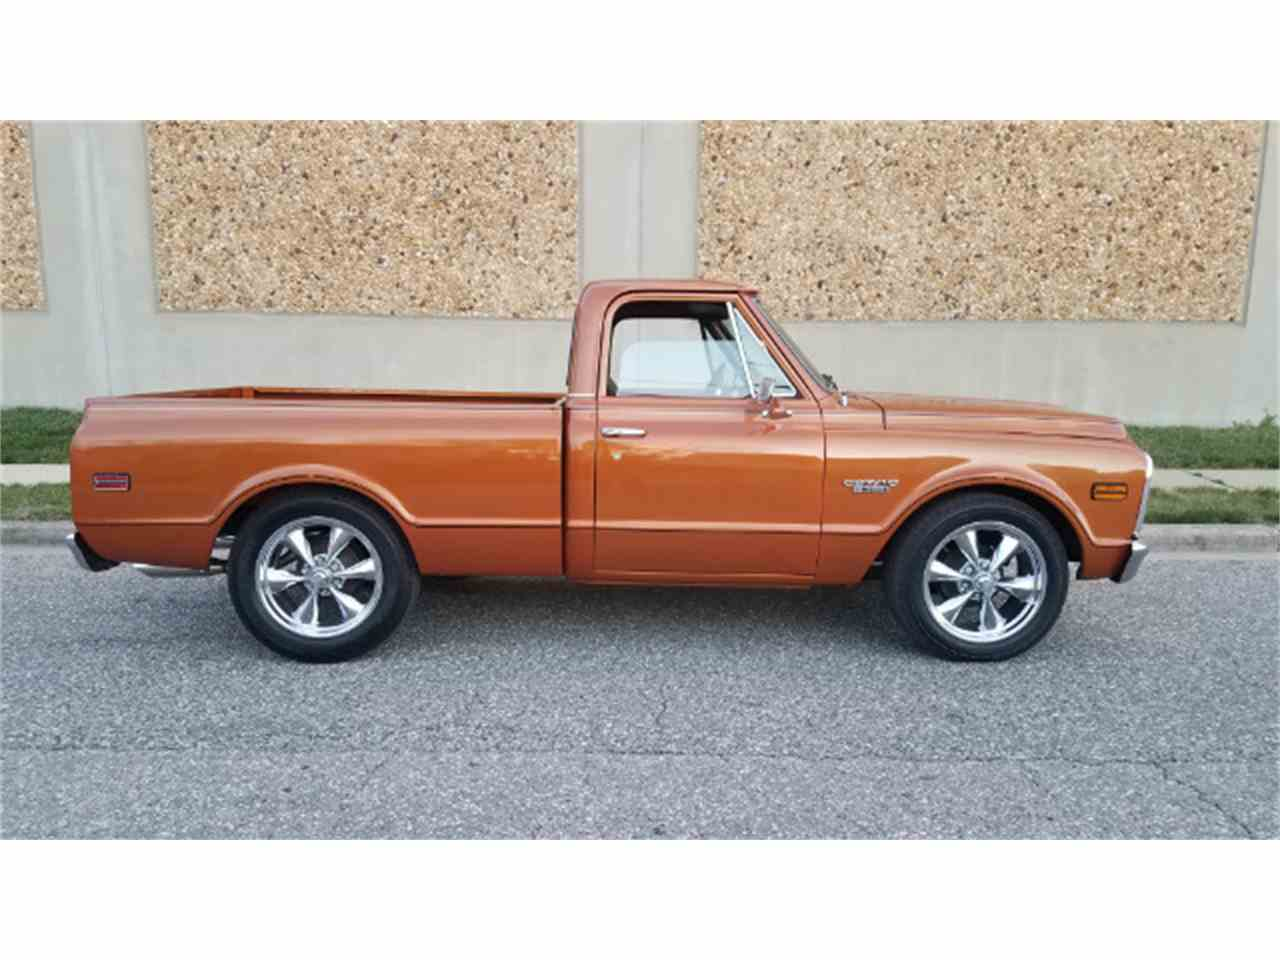 Large Picture of '69 Chevrolet C/K 10 - $27,500.00 Offered by Universal Auto Sales - KKWK